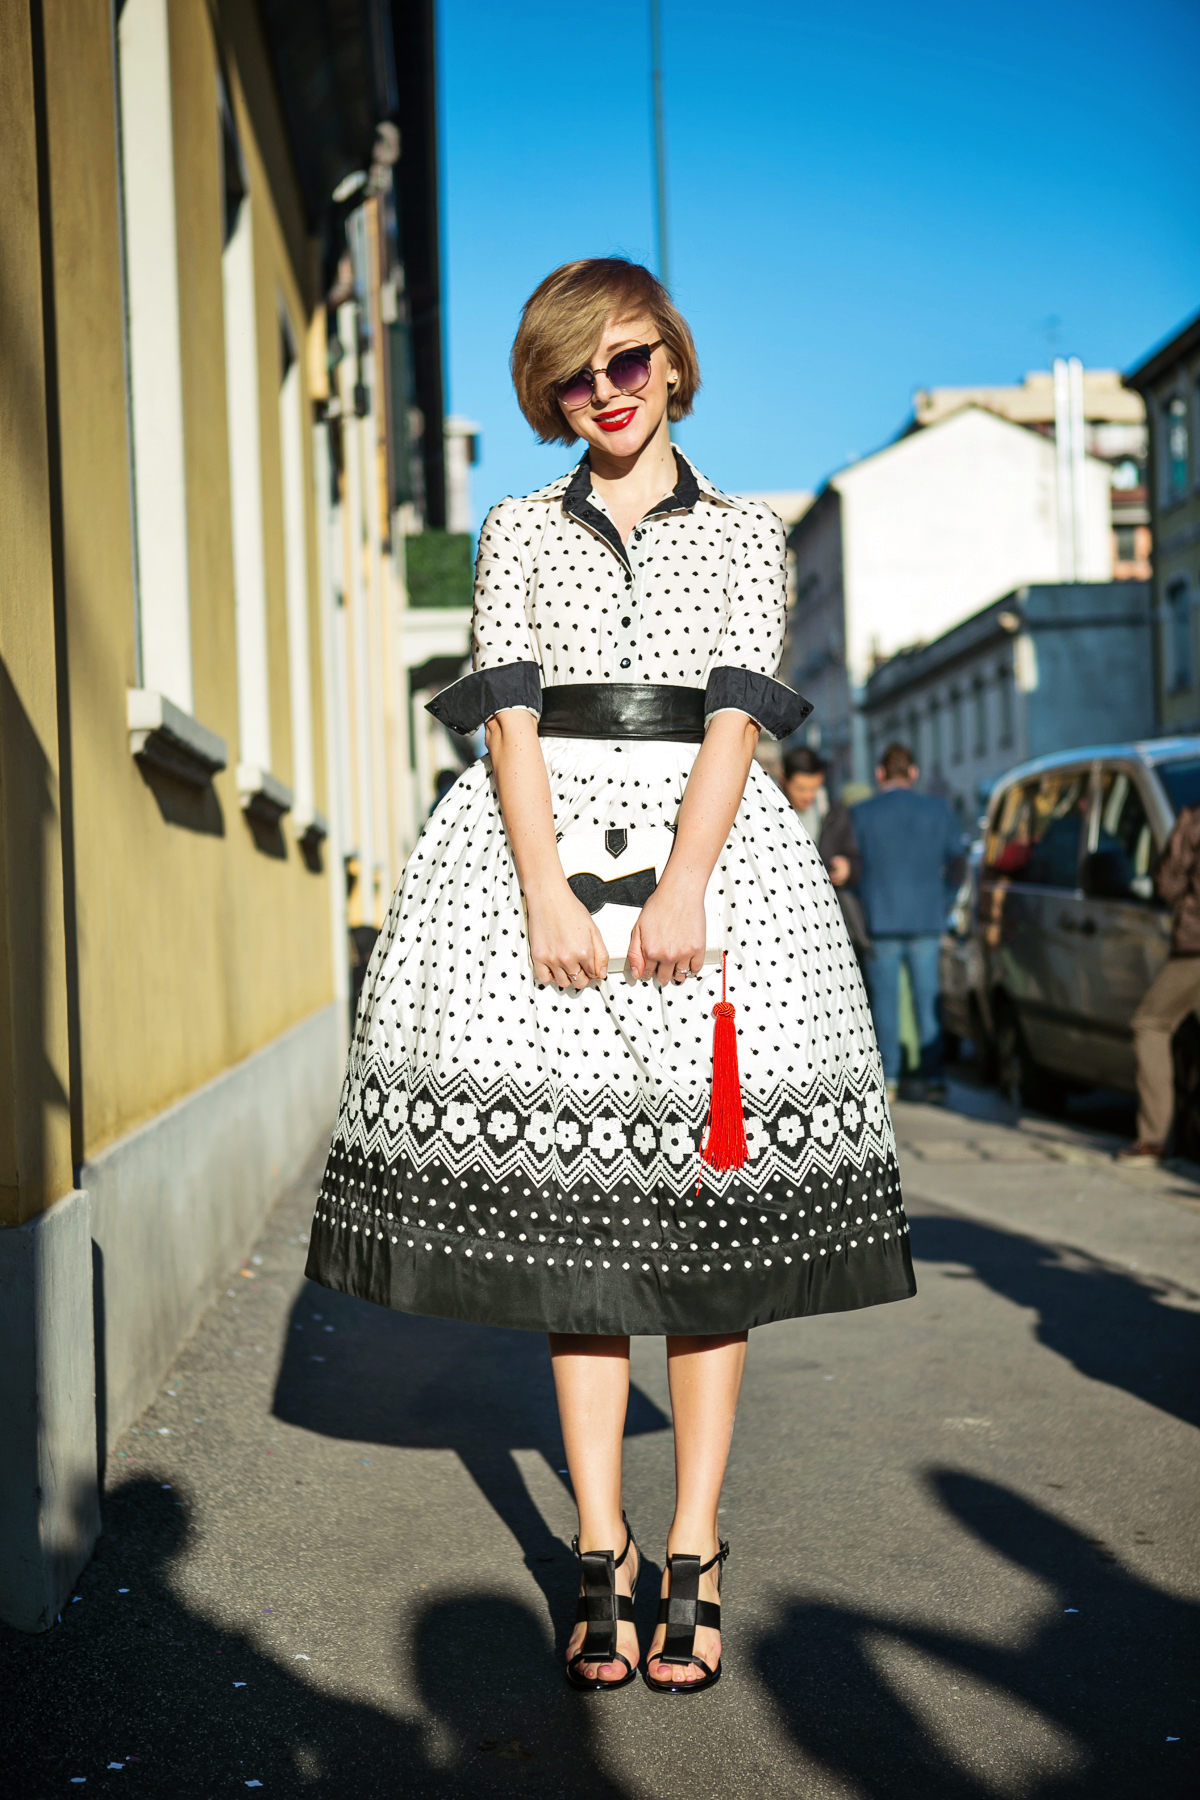 thecablook darya kamalova russian italian blogger street style short blonde hair mfw milan fashion week missoni roksana dress oksana ostrovskaya topshop black sandals book clutch-3